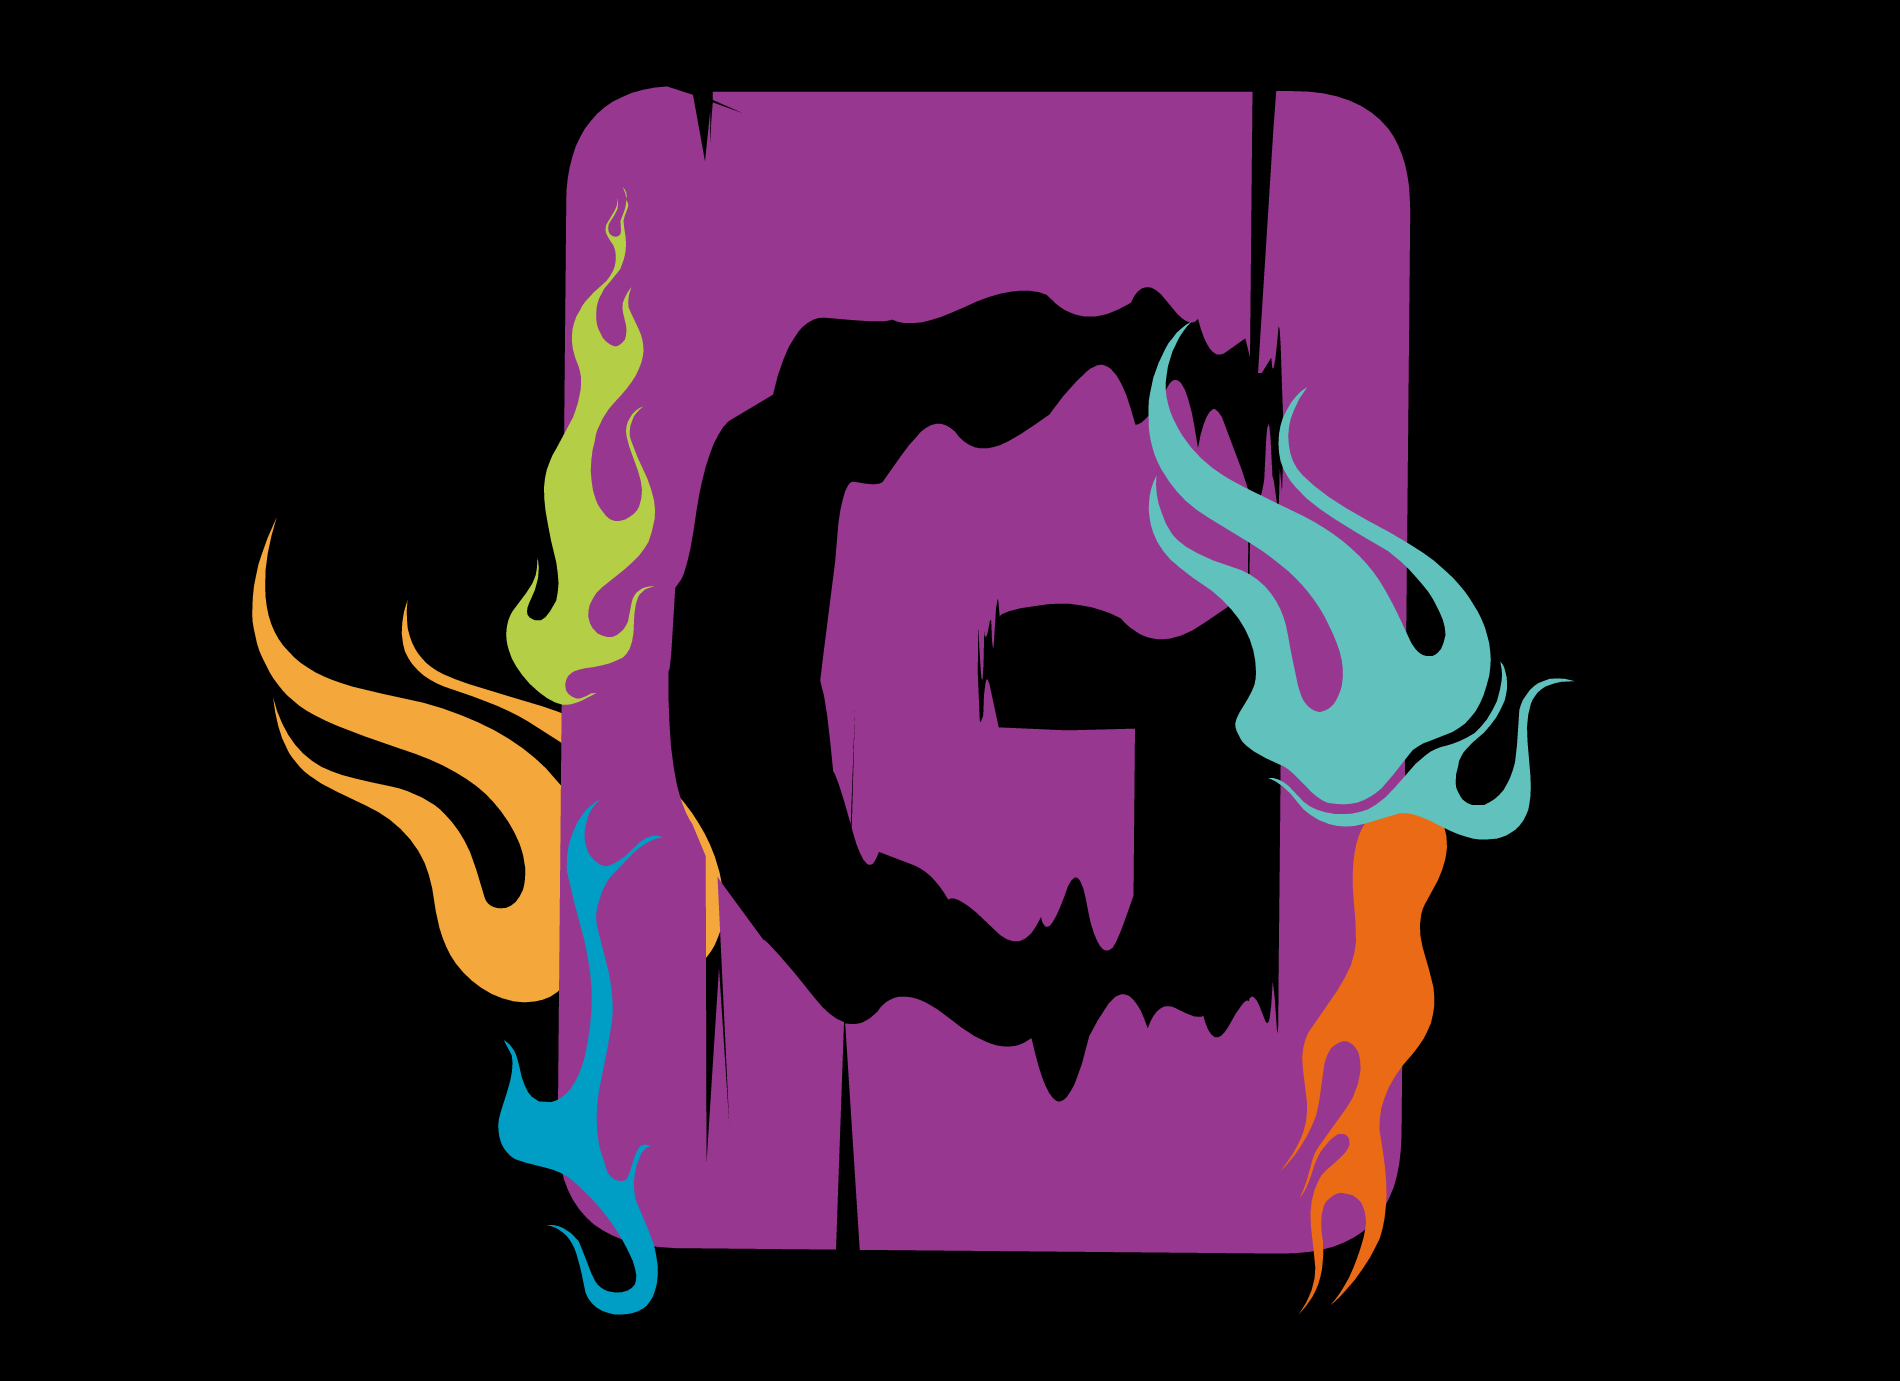 Letter G Wallpapers Top Free Letter G Backgrounds Wallpaperaccess